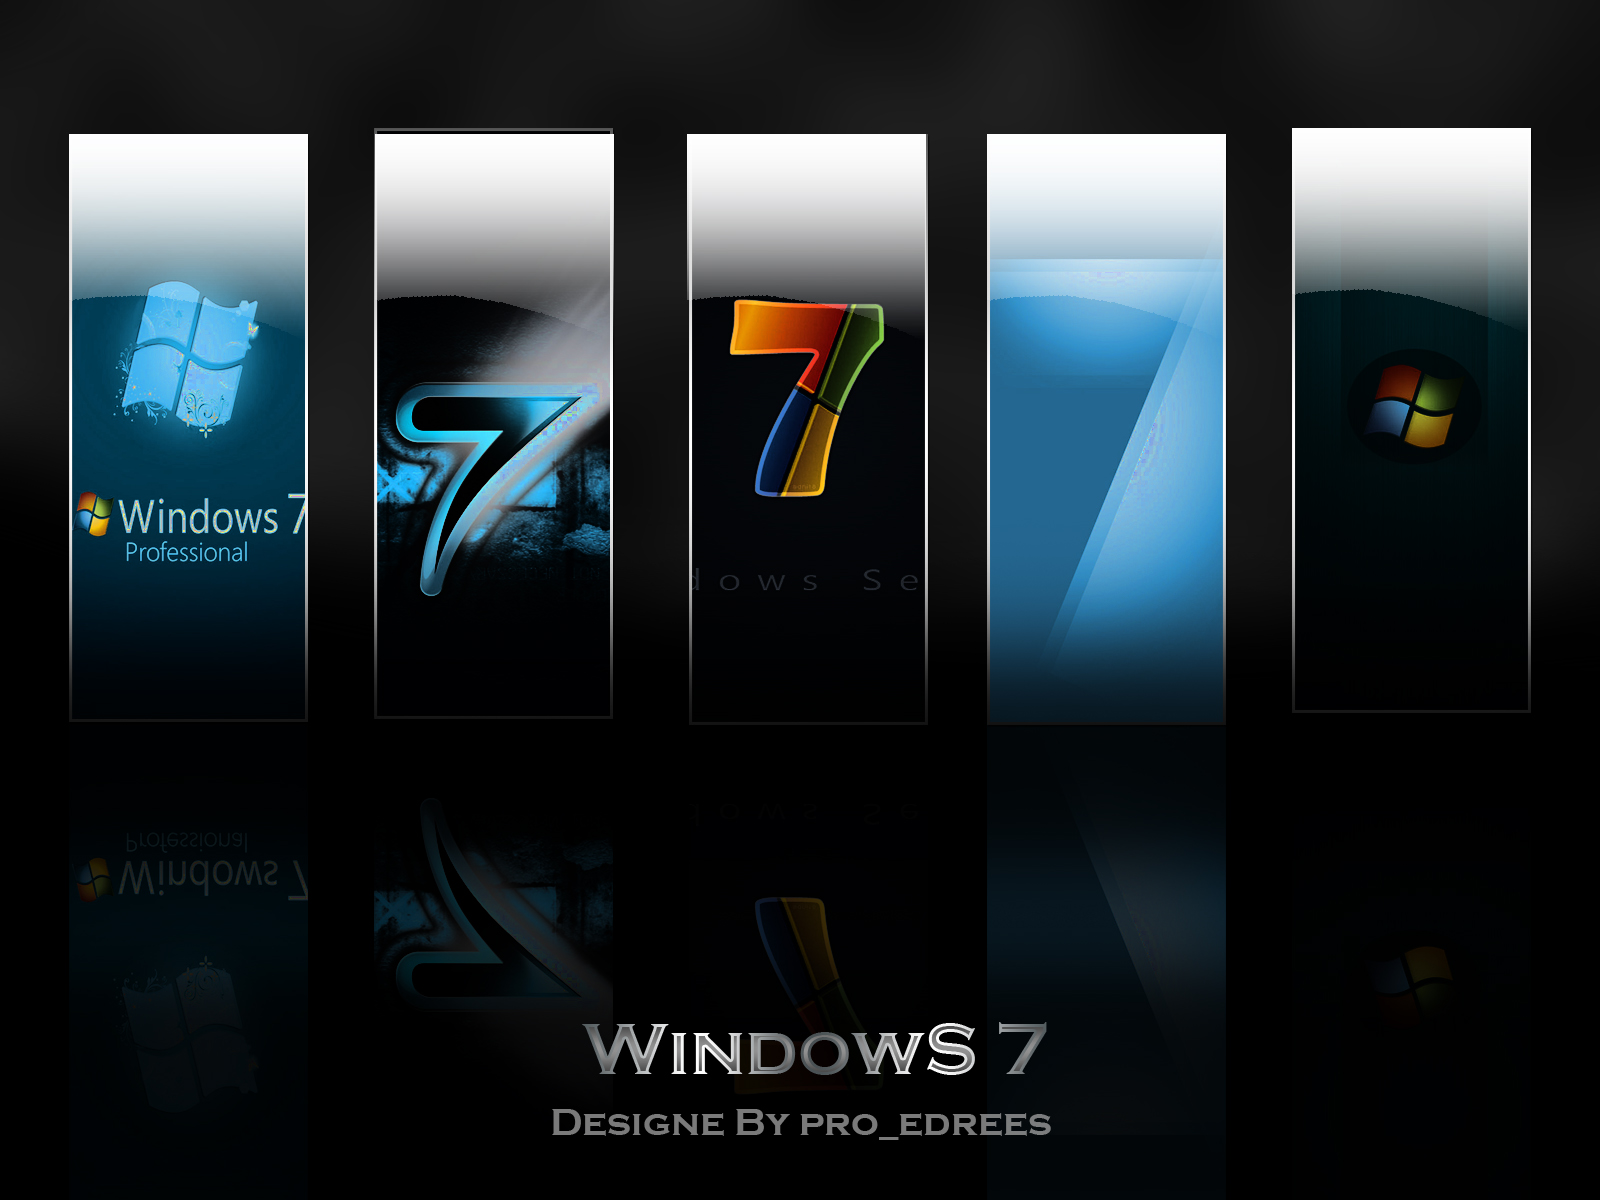 windows 7 fantastic wallpaper by proedrees windows 7 fantastic wallpaper by proedrees